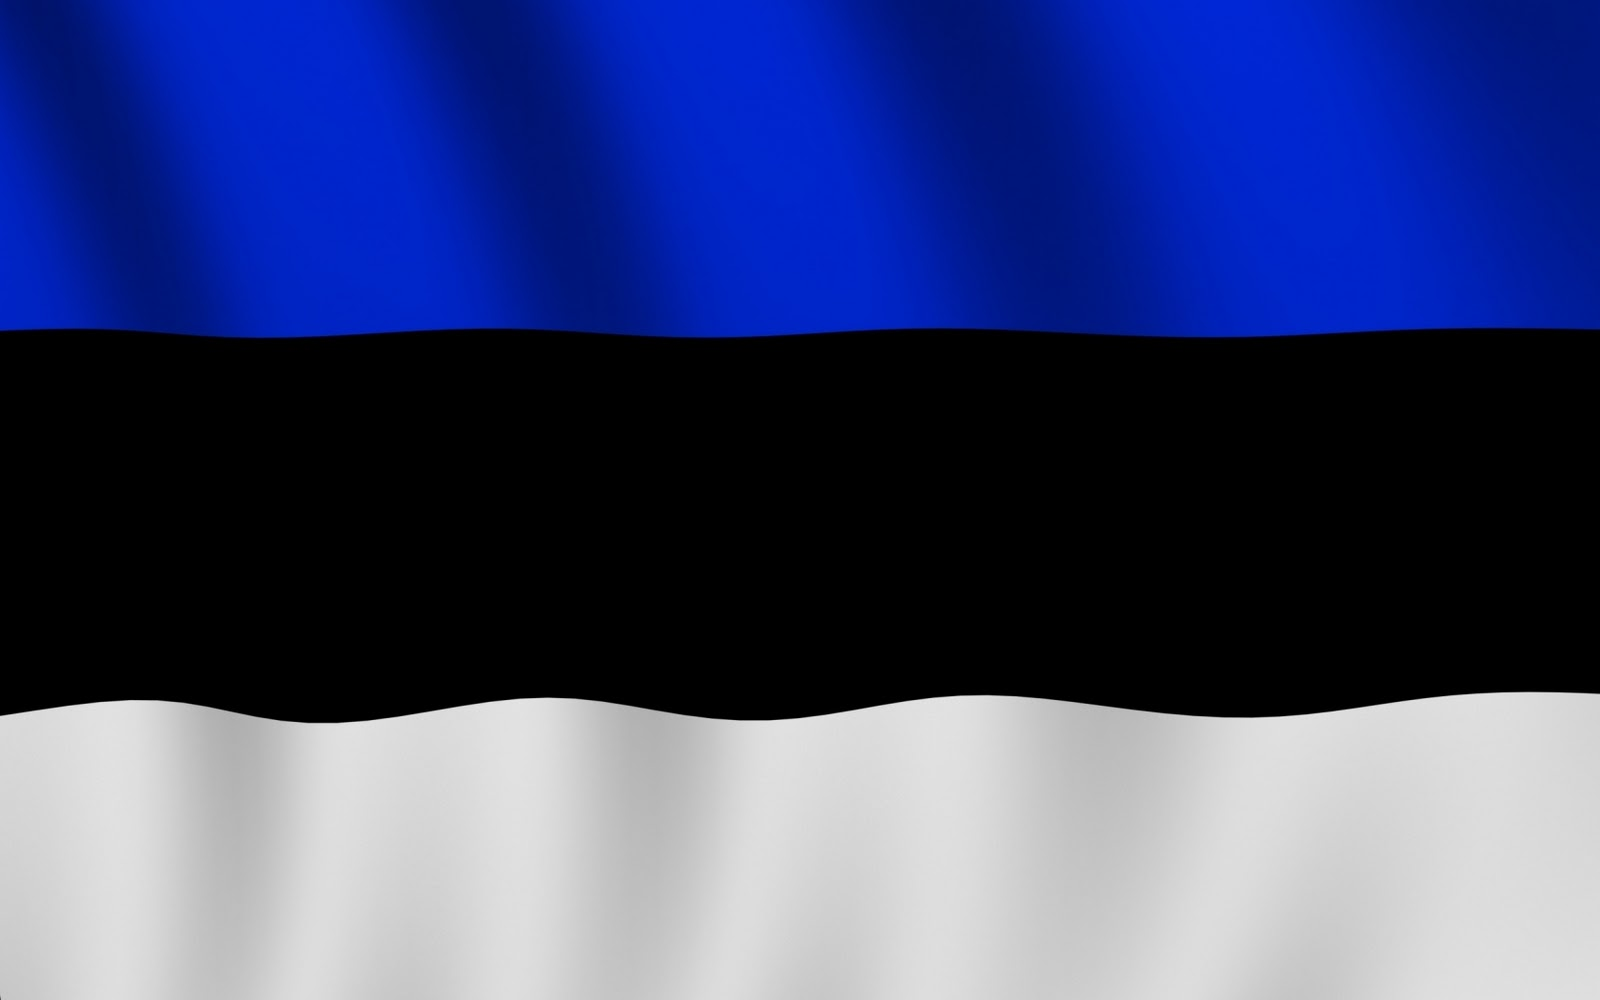 Estonia Flag Pictures